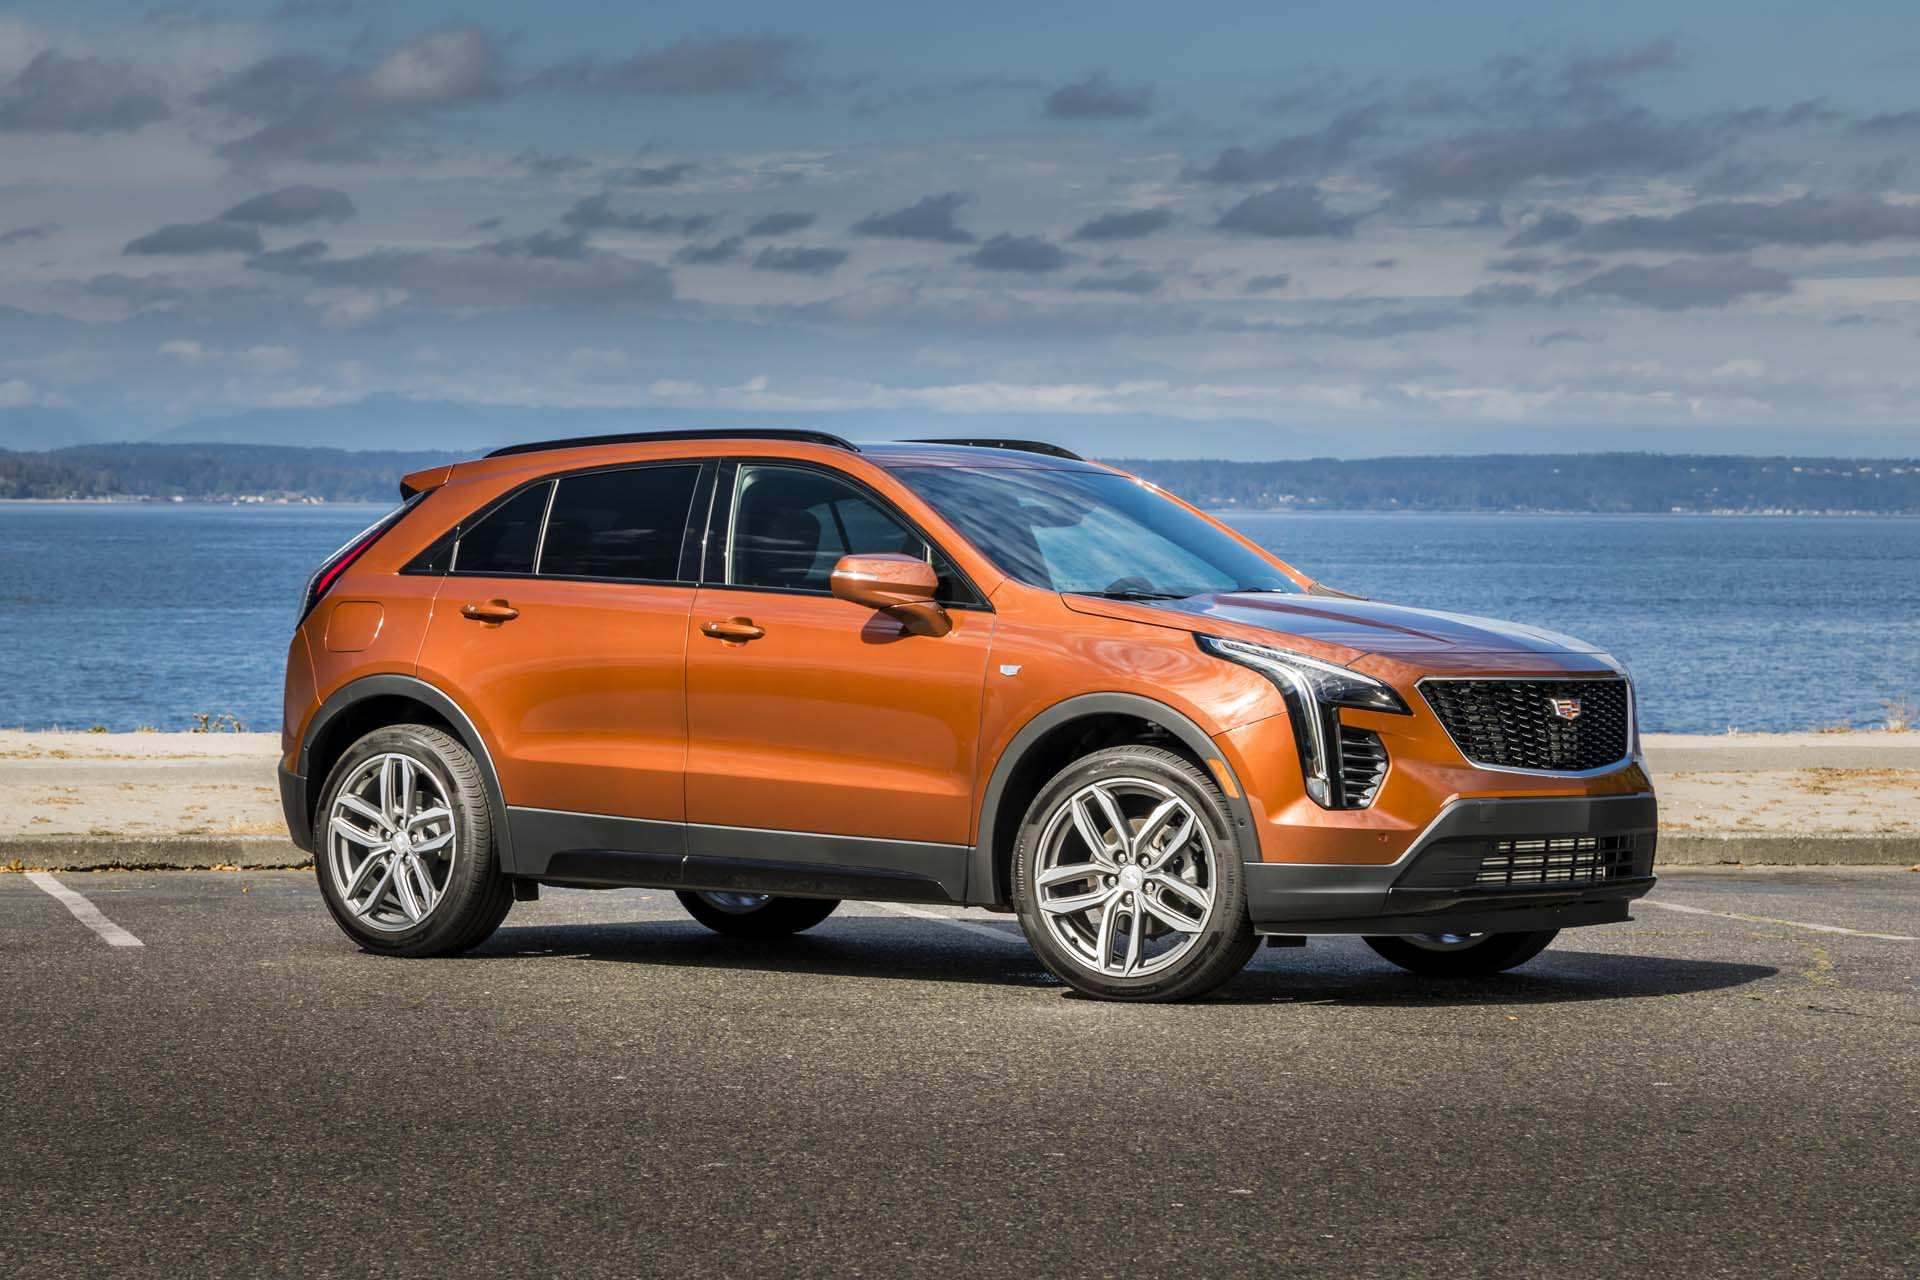 78 Best Review Cadillac 2019 Xt4 Price New Engine Redesign by Cadillac 2019 Xt4 Price New Engine